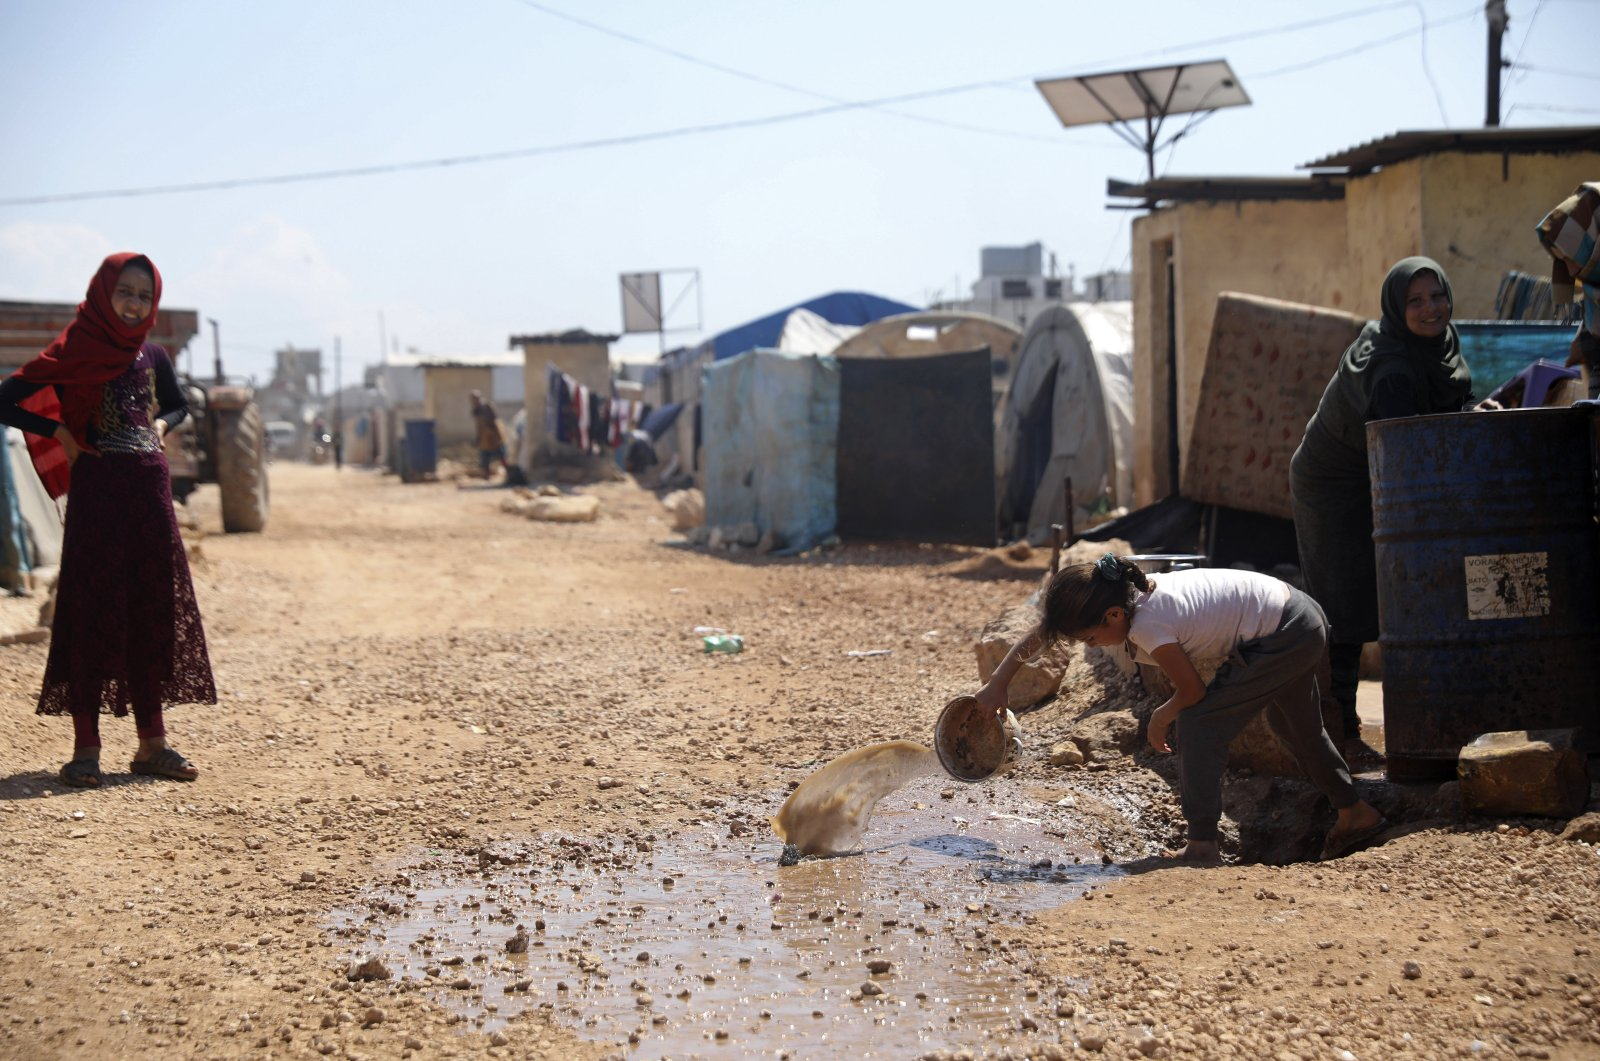 A large refugee camp on the Syrian side of the border with Turkey, near the town of Atma, in Idlib province, April 19, 2020. (AP Photo)